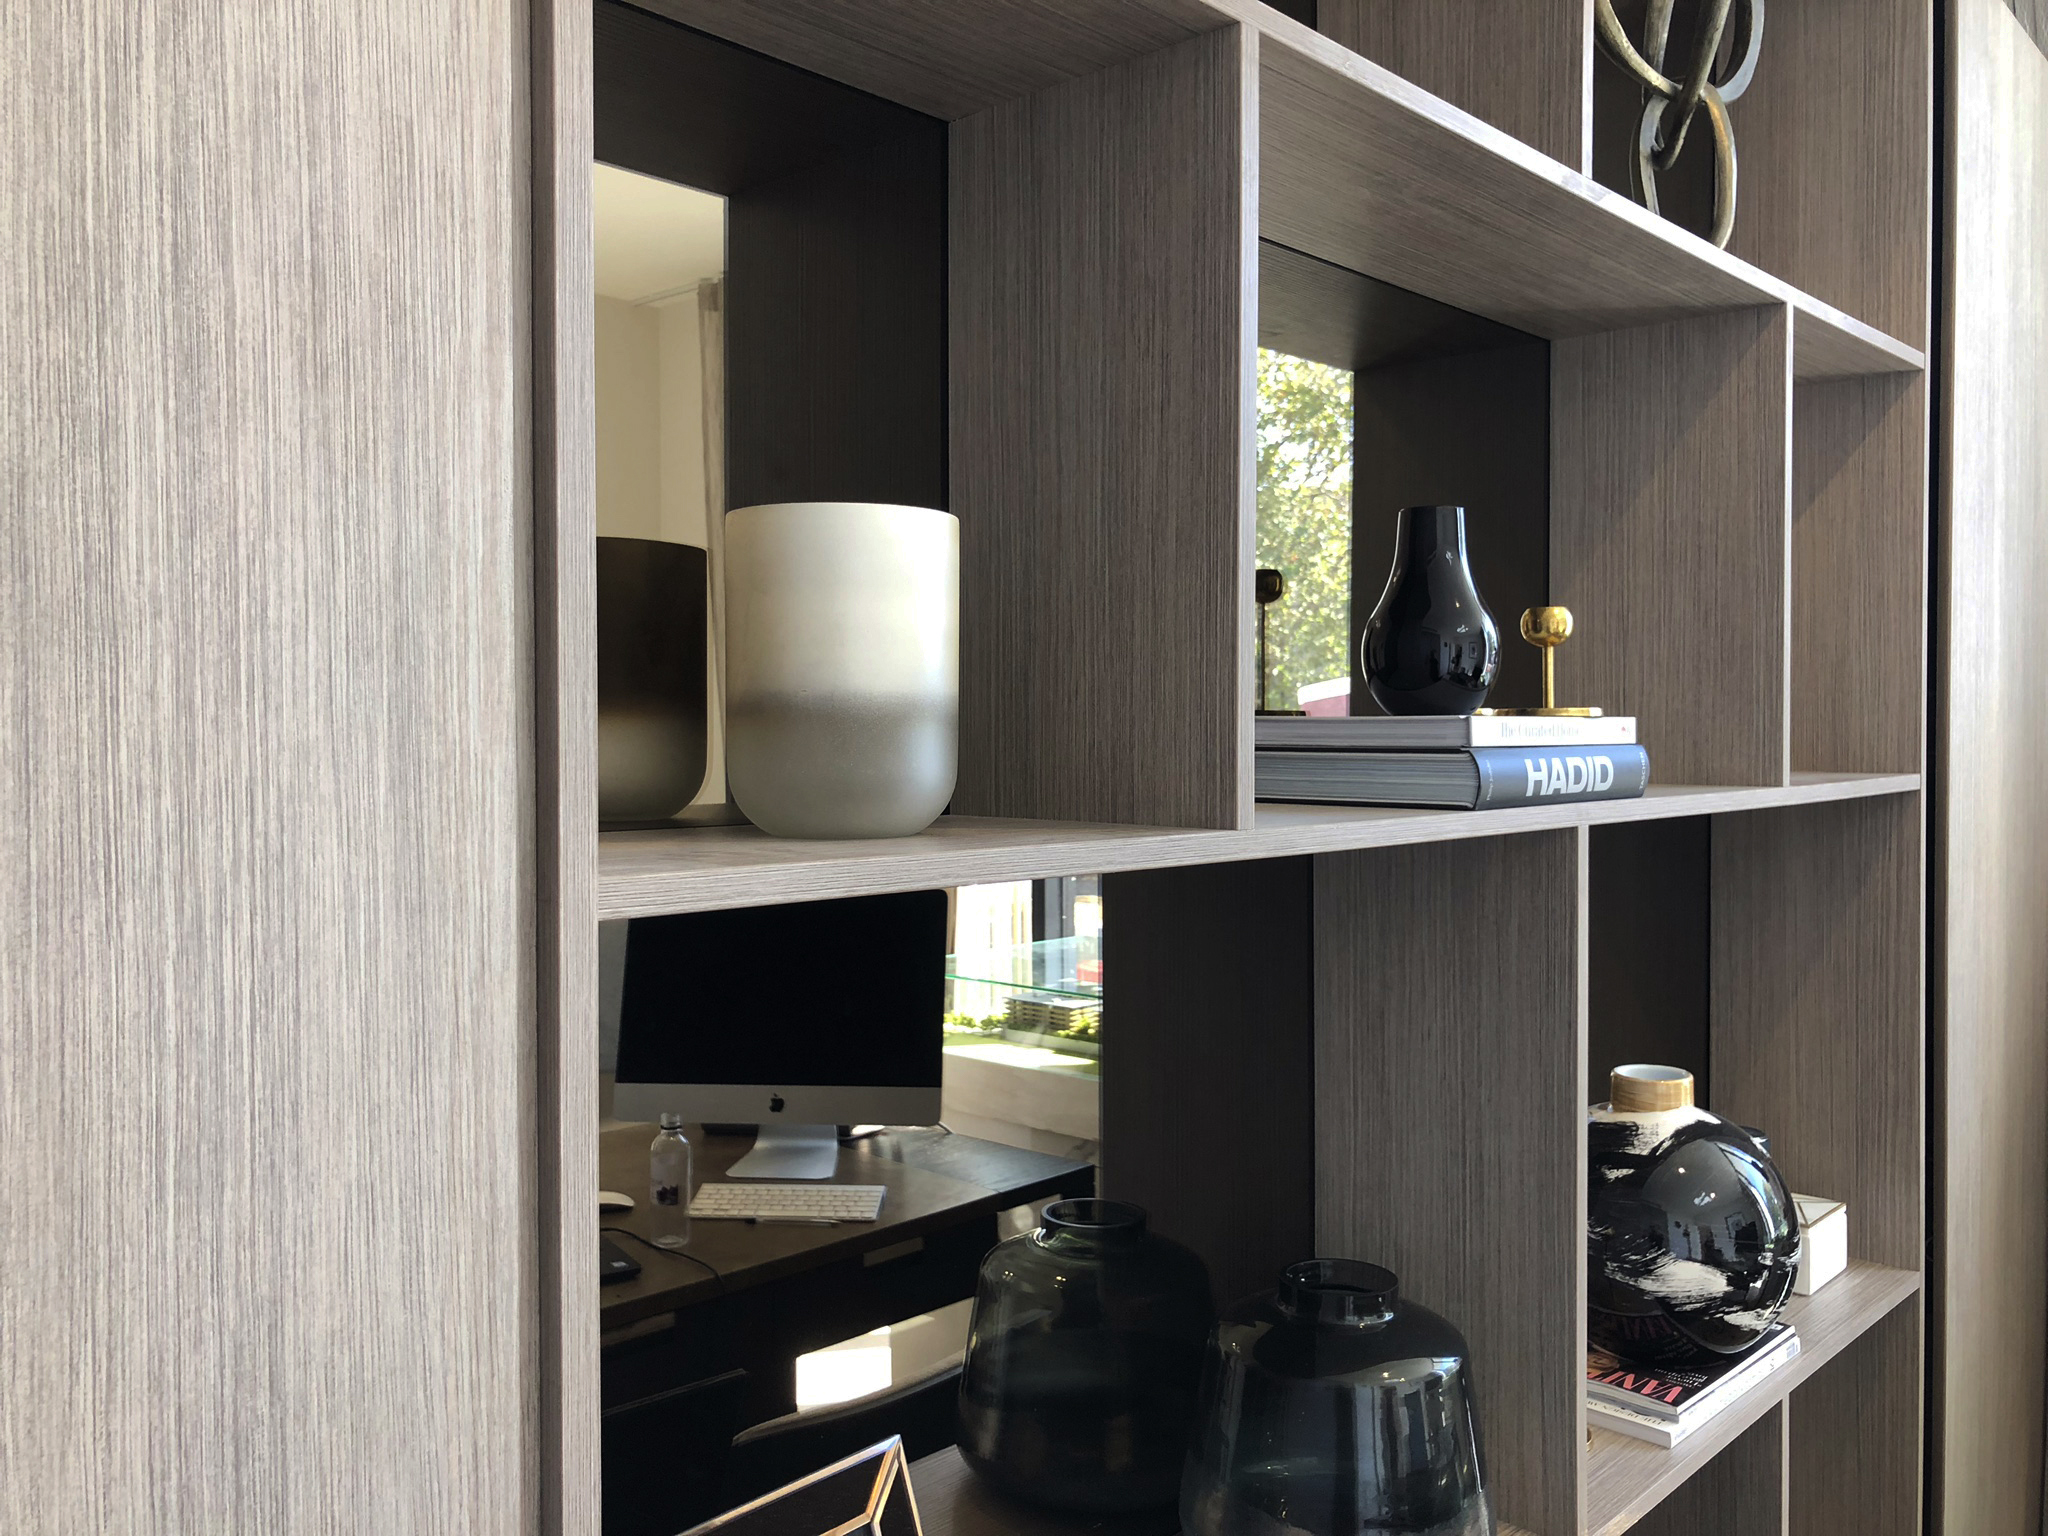 S Pagewood townhouse interior 03